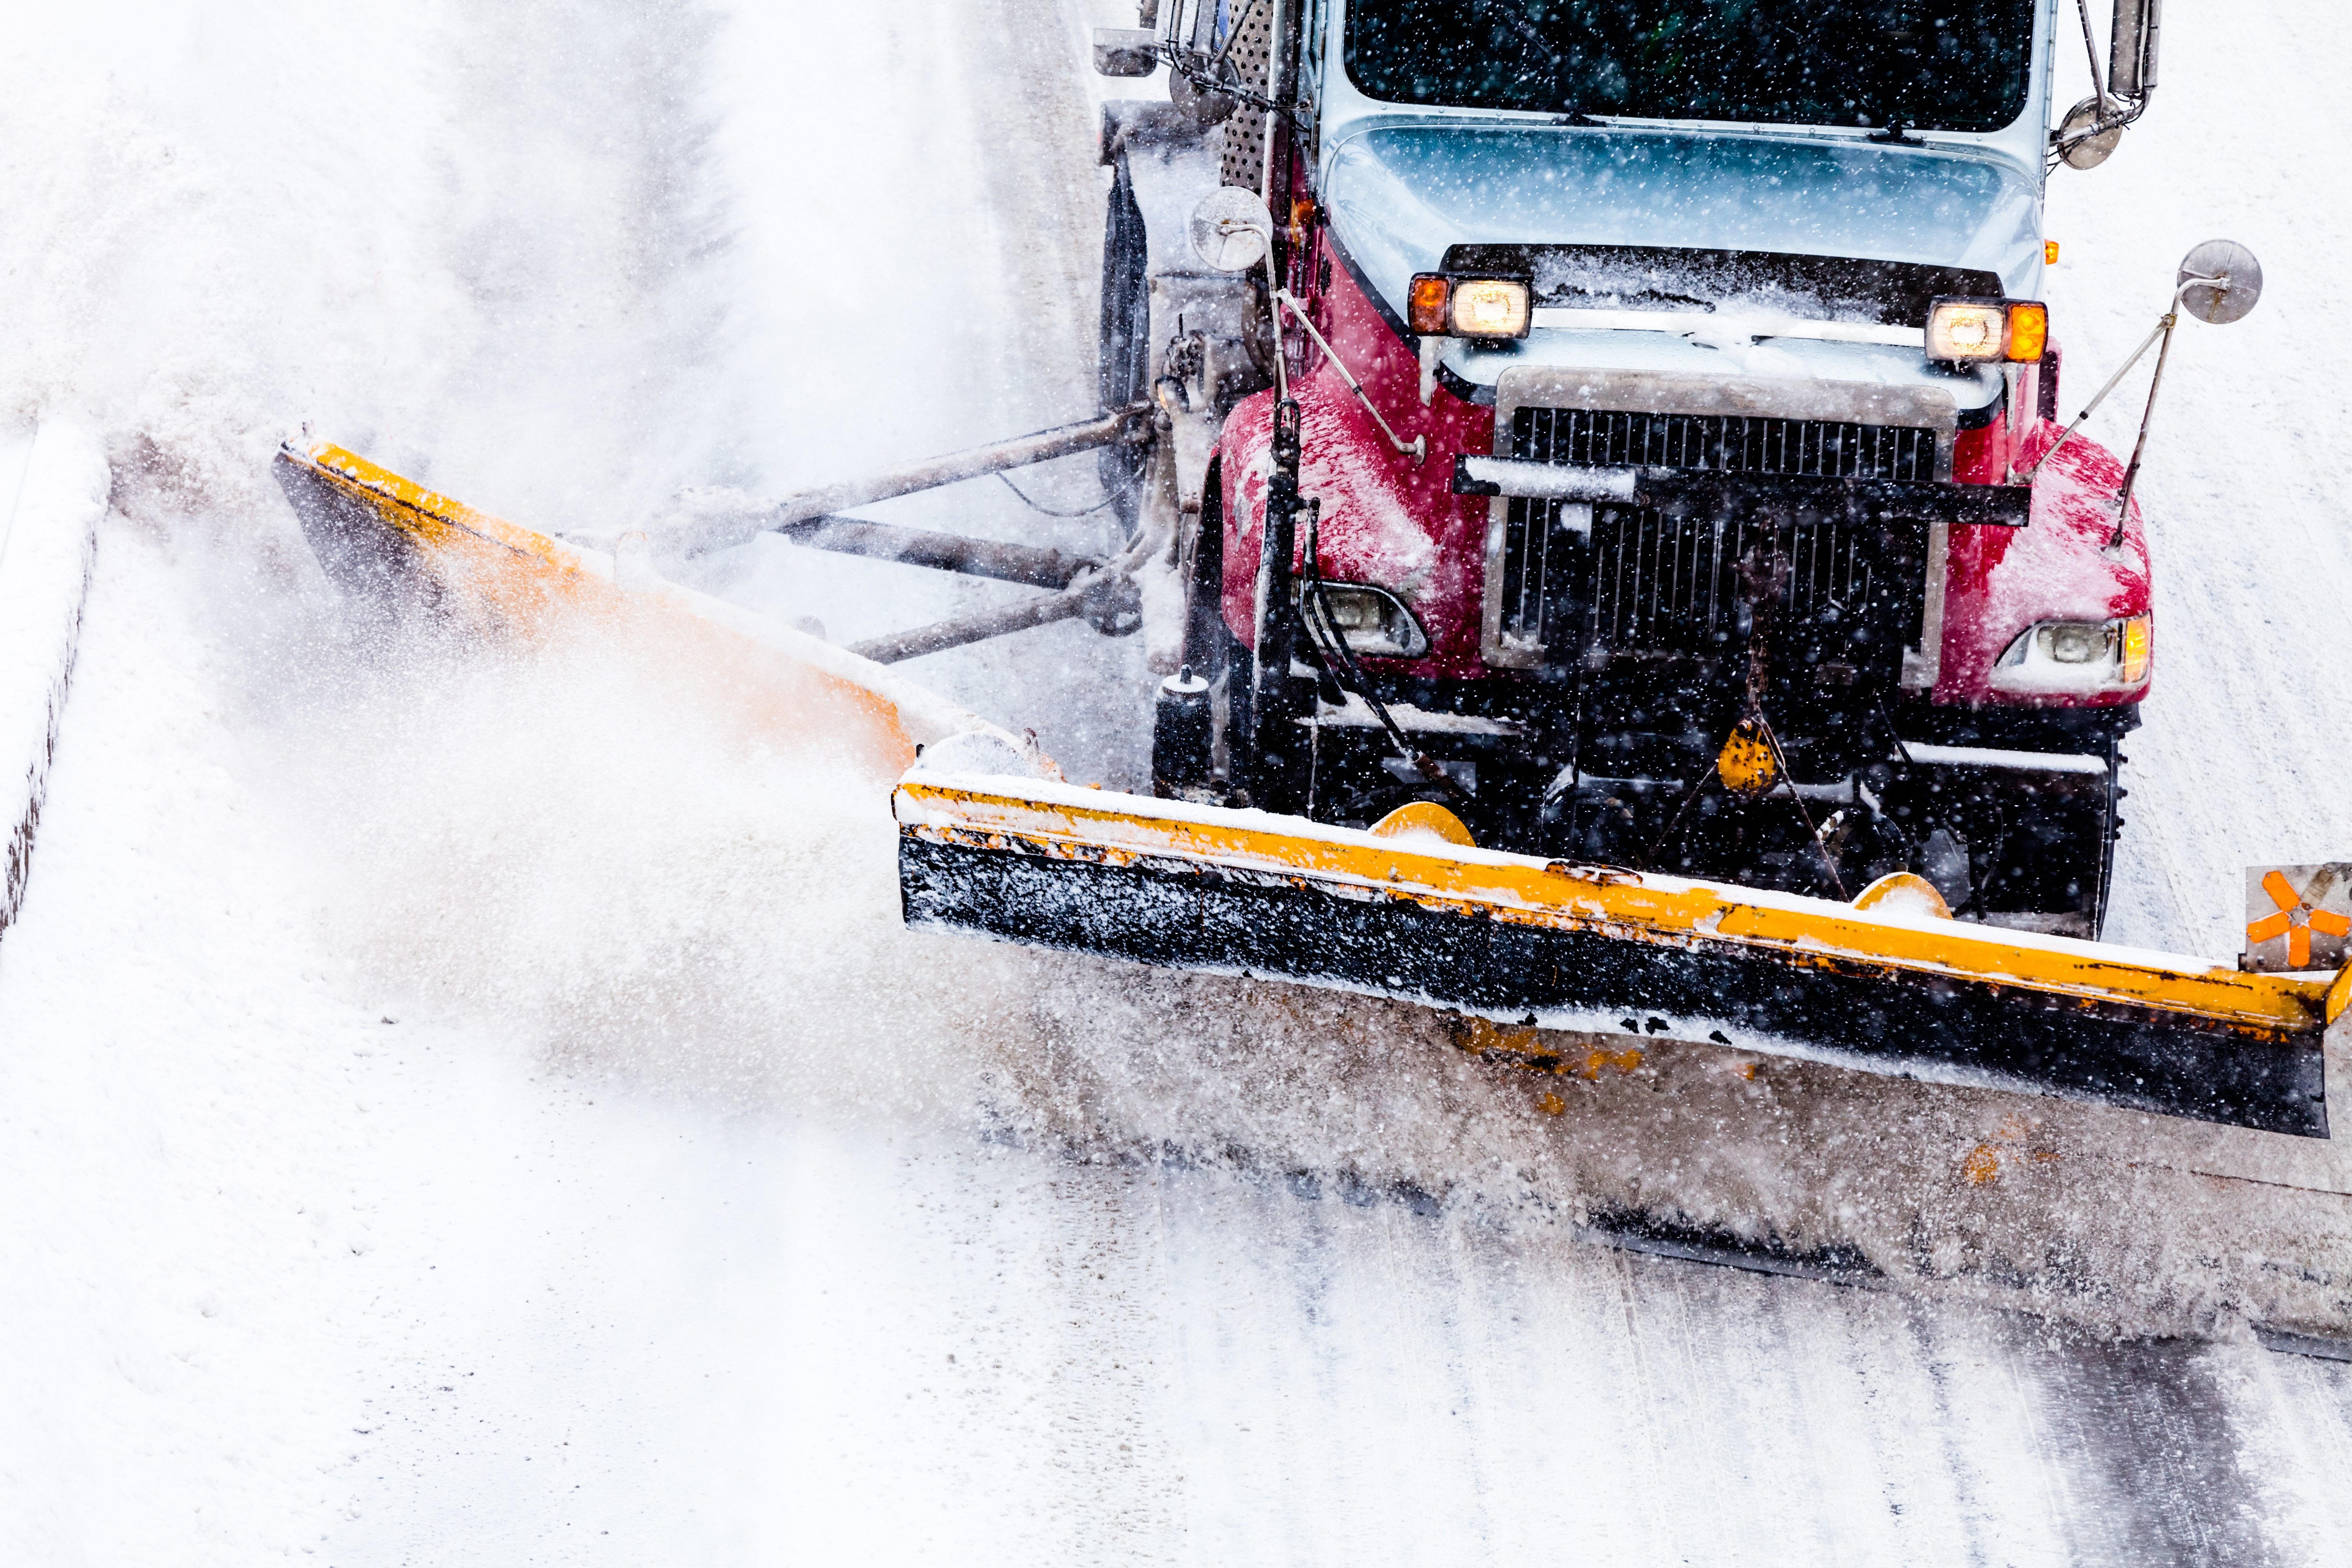 How to Avoid Snow Plow Damage  - Featured Image